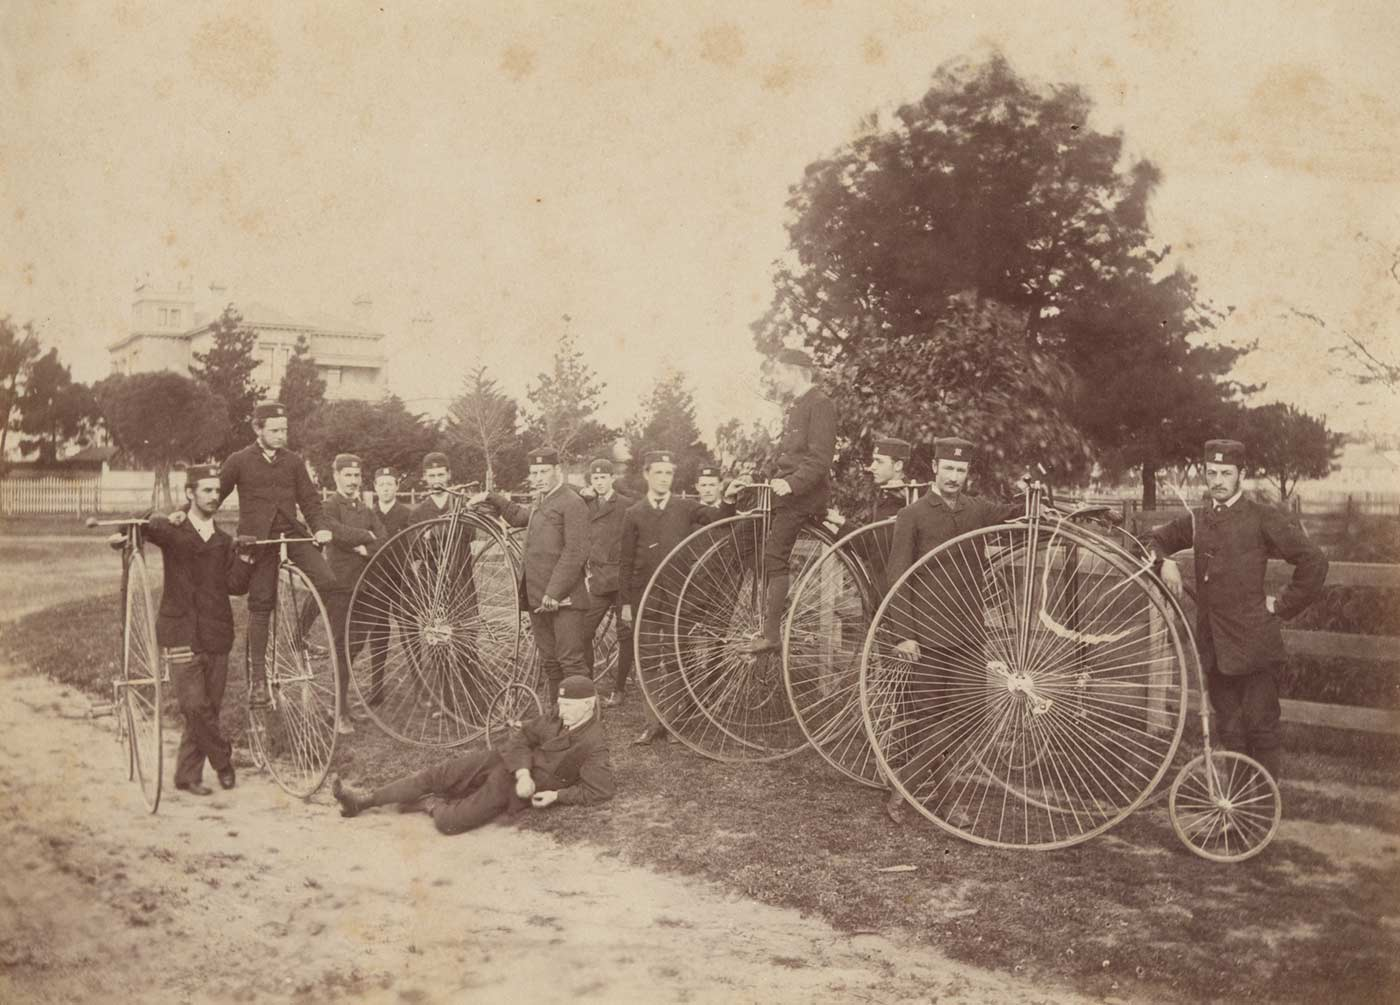 A group of men pose with penny-farthing bicycles. - click to view larger image